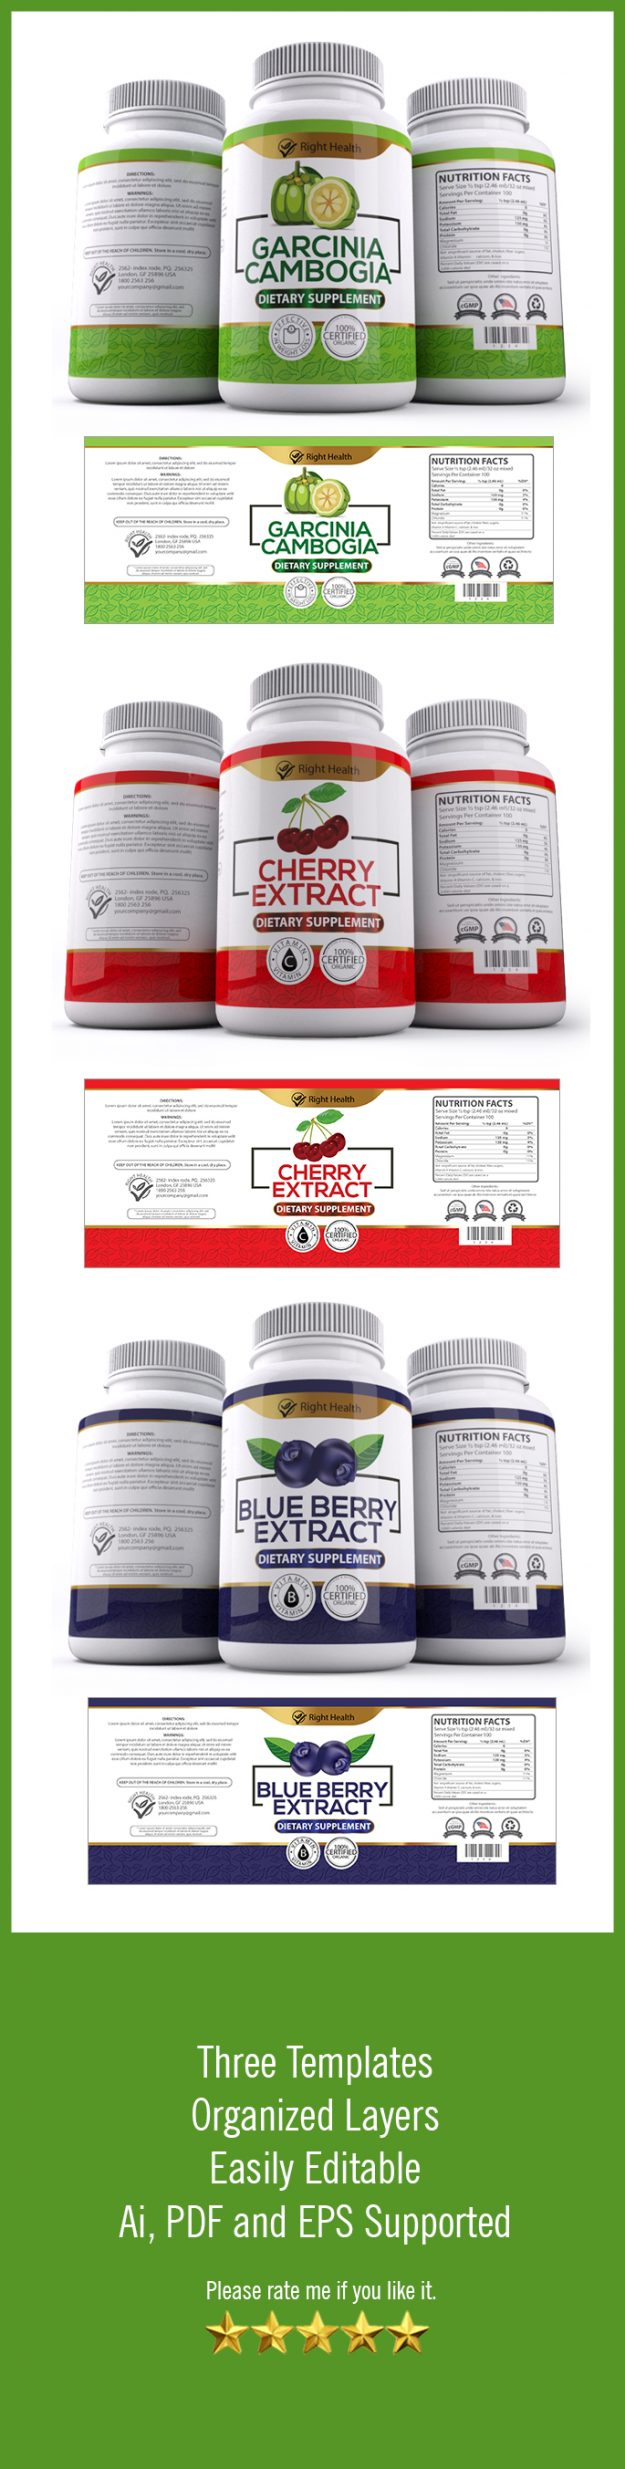 Free Health Supplement Label Template Graphic Design Resources